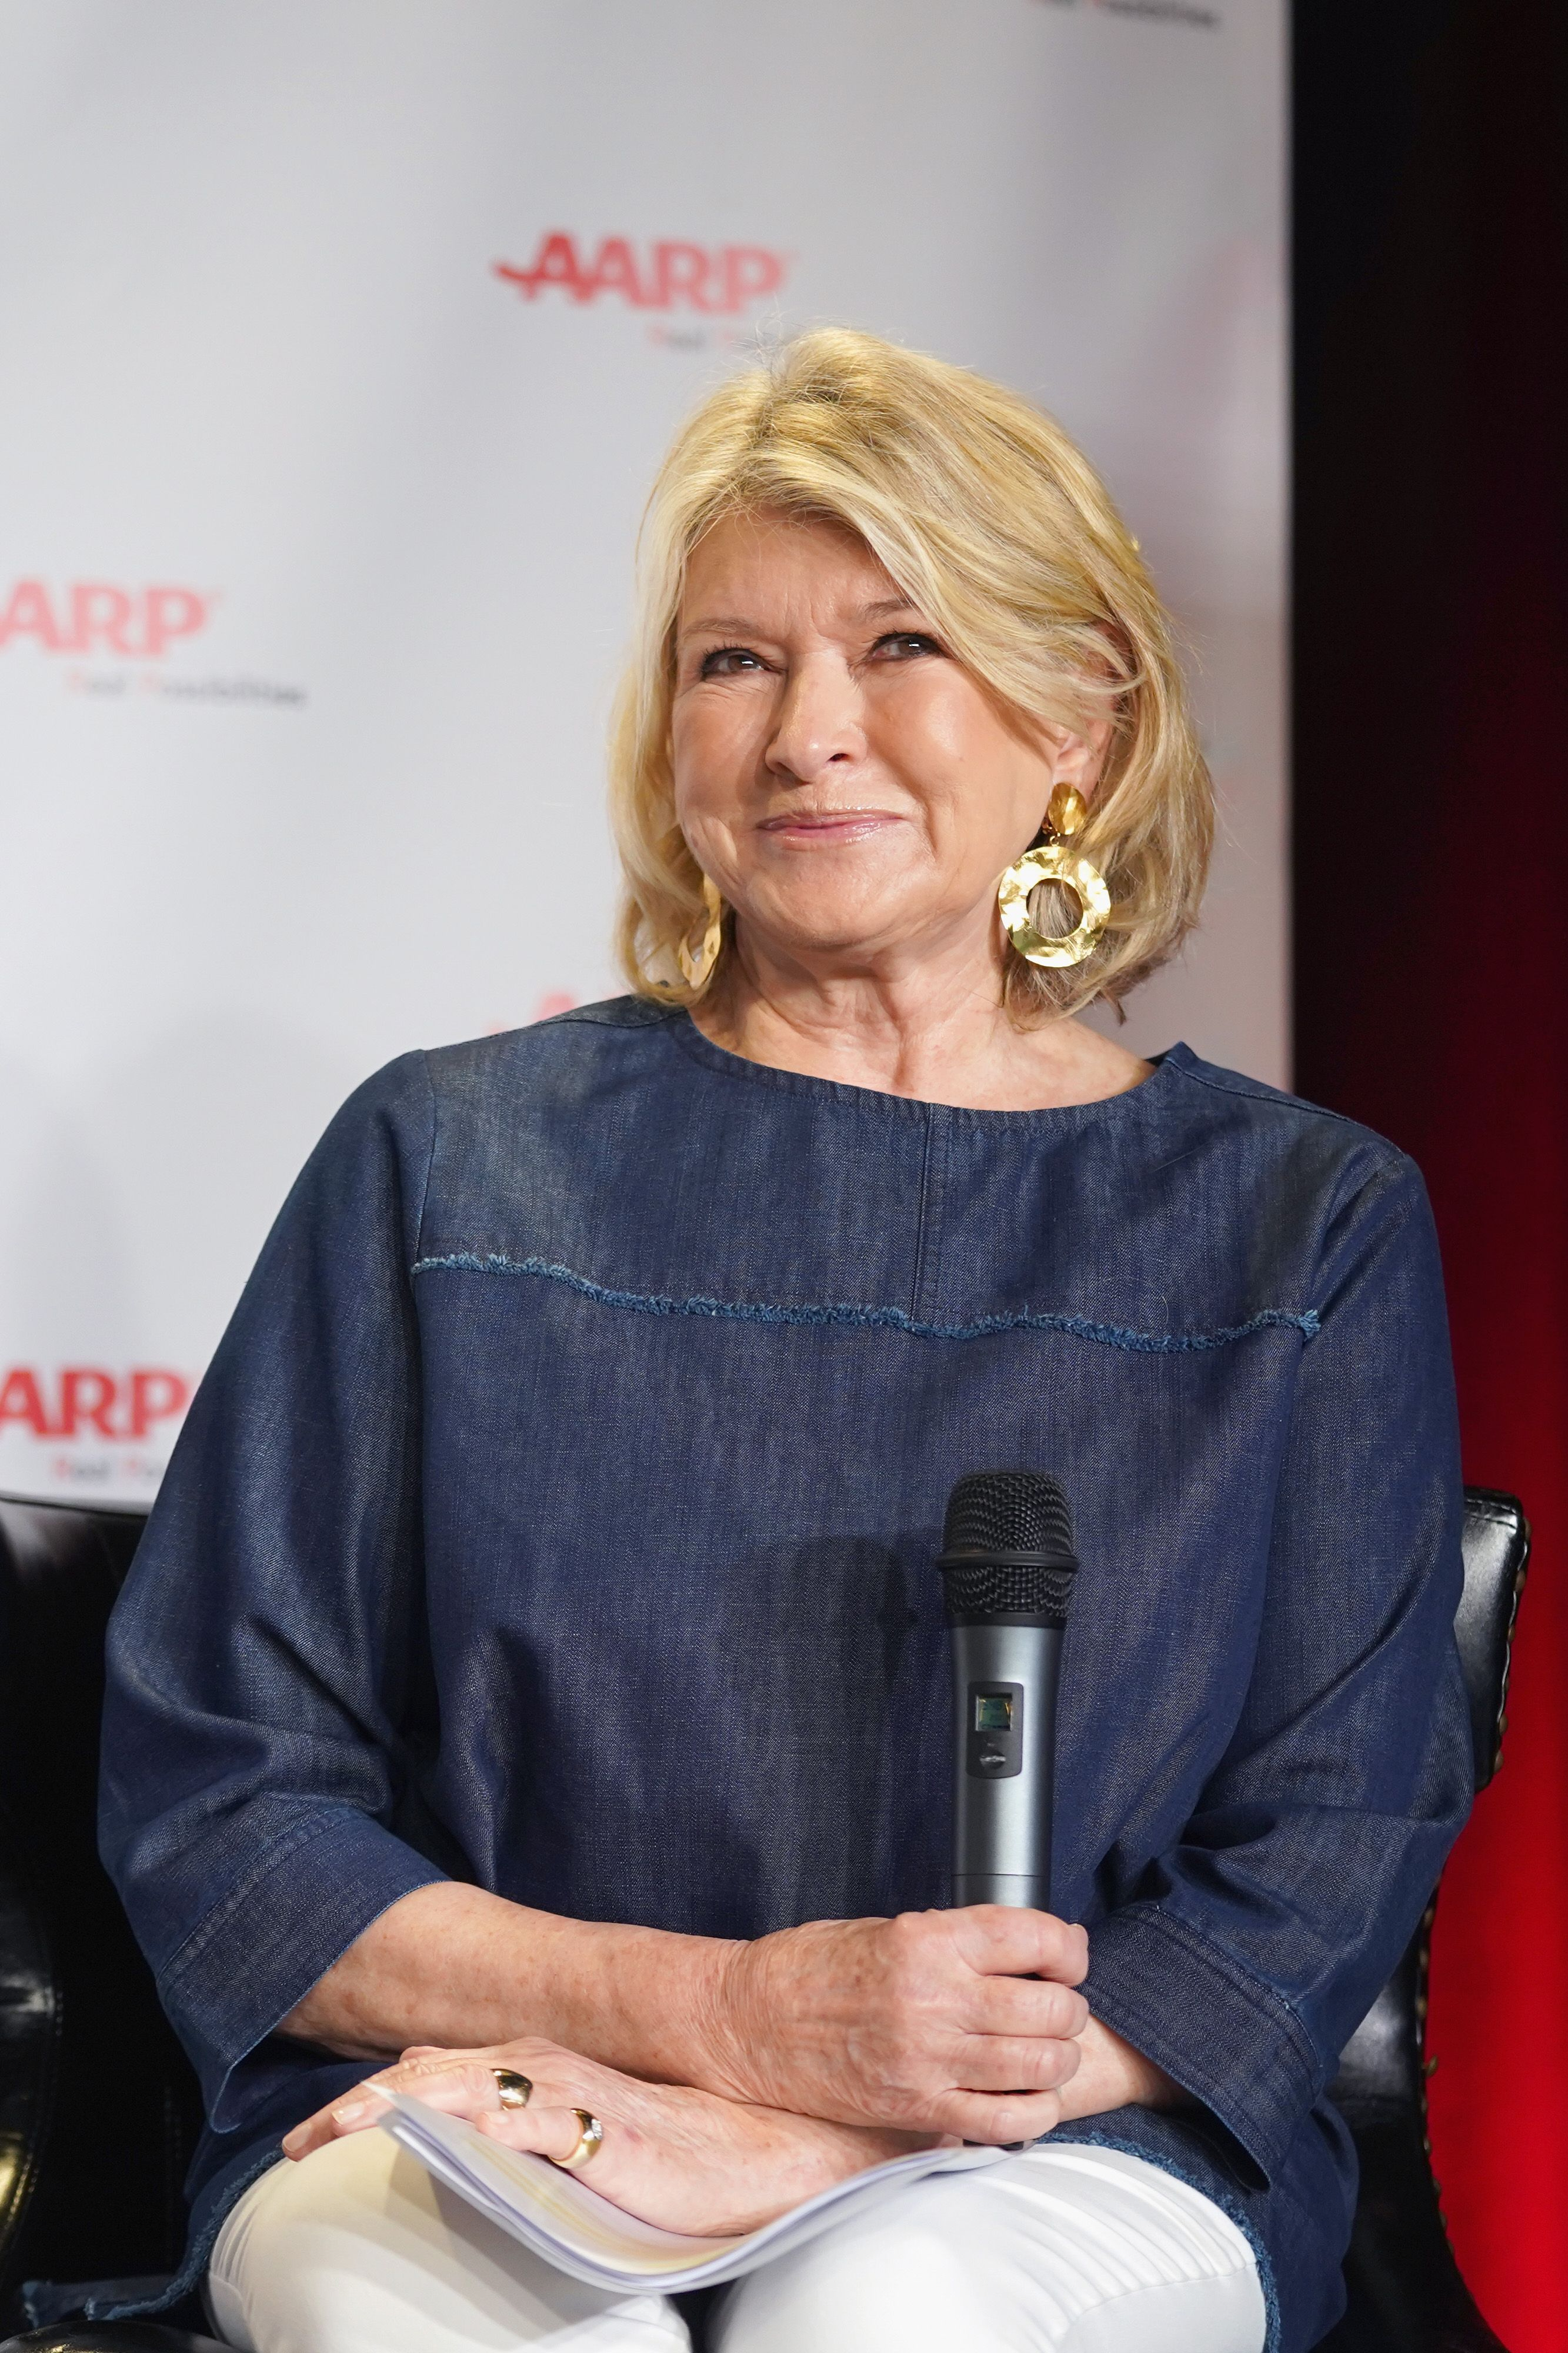 Martha Stewart speaks onstage at Fully Baked: Martha Stewart during the SXSW Conference and Festivals on March 11, 2019, in Austin, Texas | Photo: Amy E. Price/Getty Images